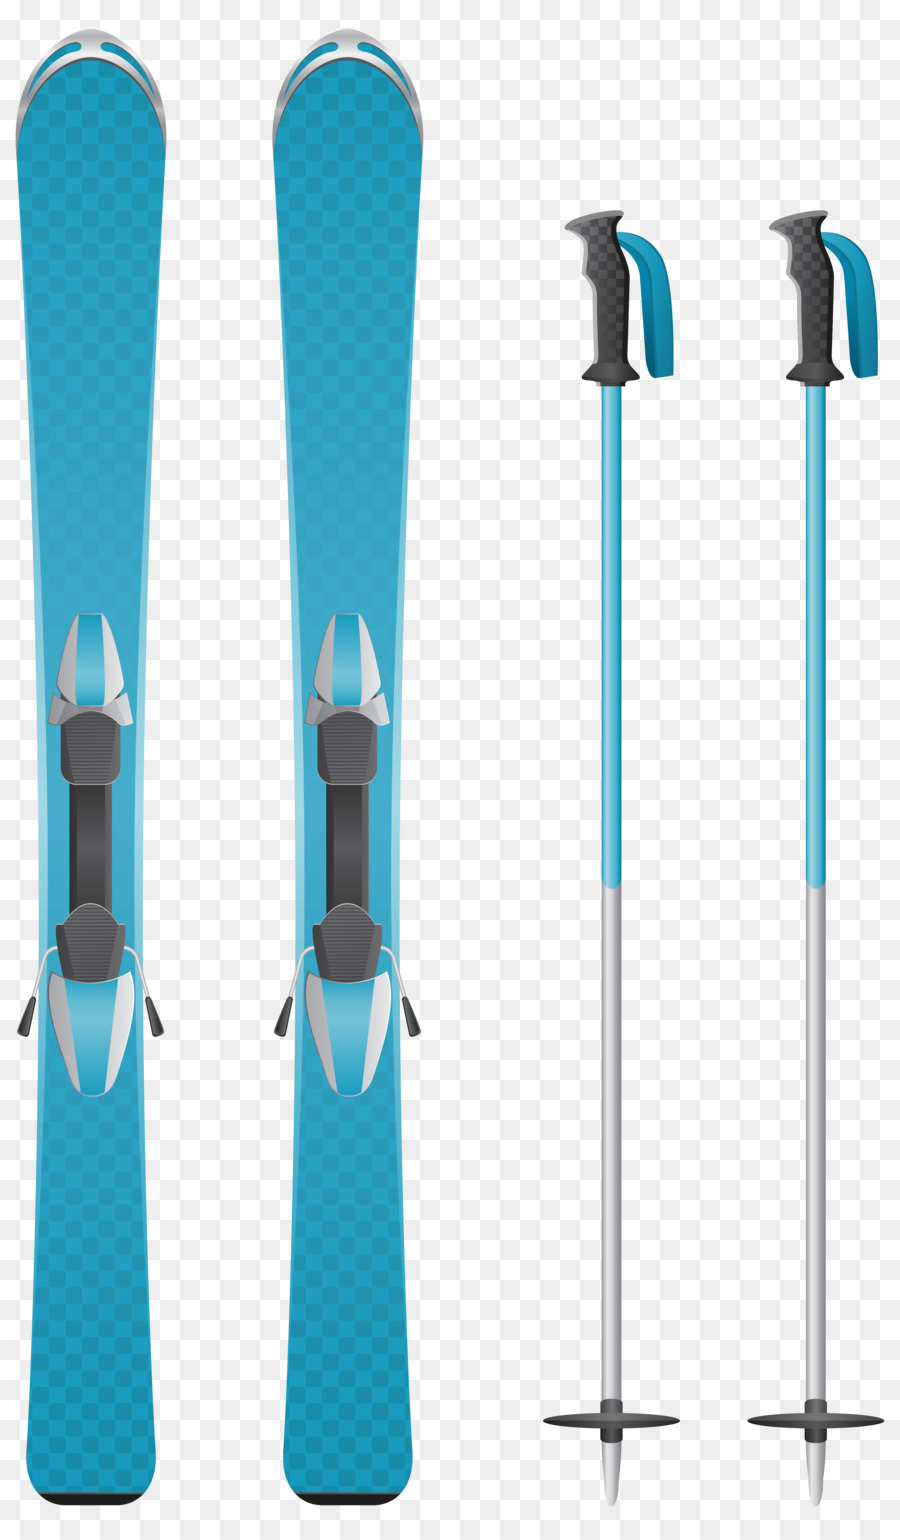 skis png clipart Skiing Clip art clipart.